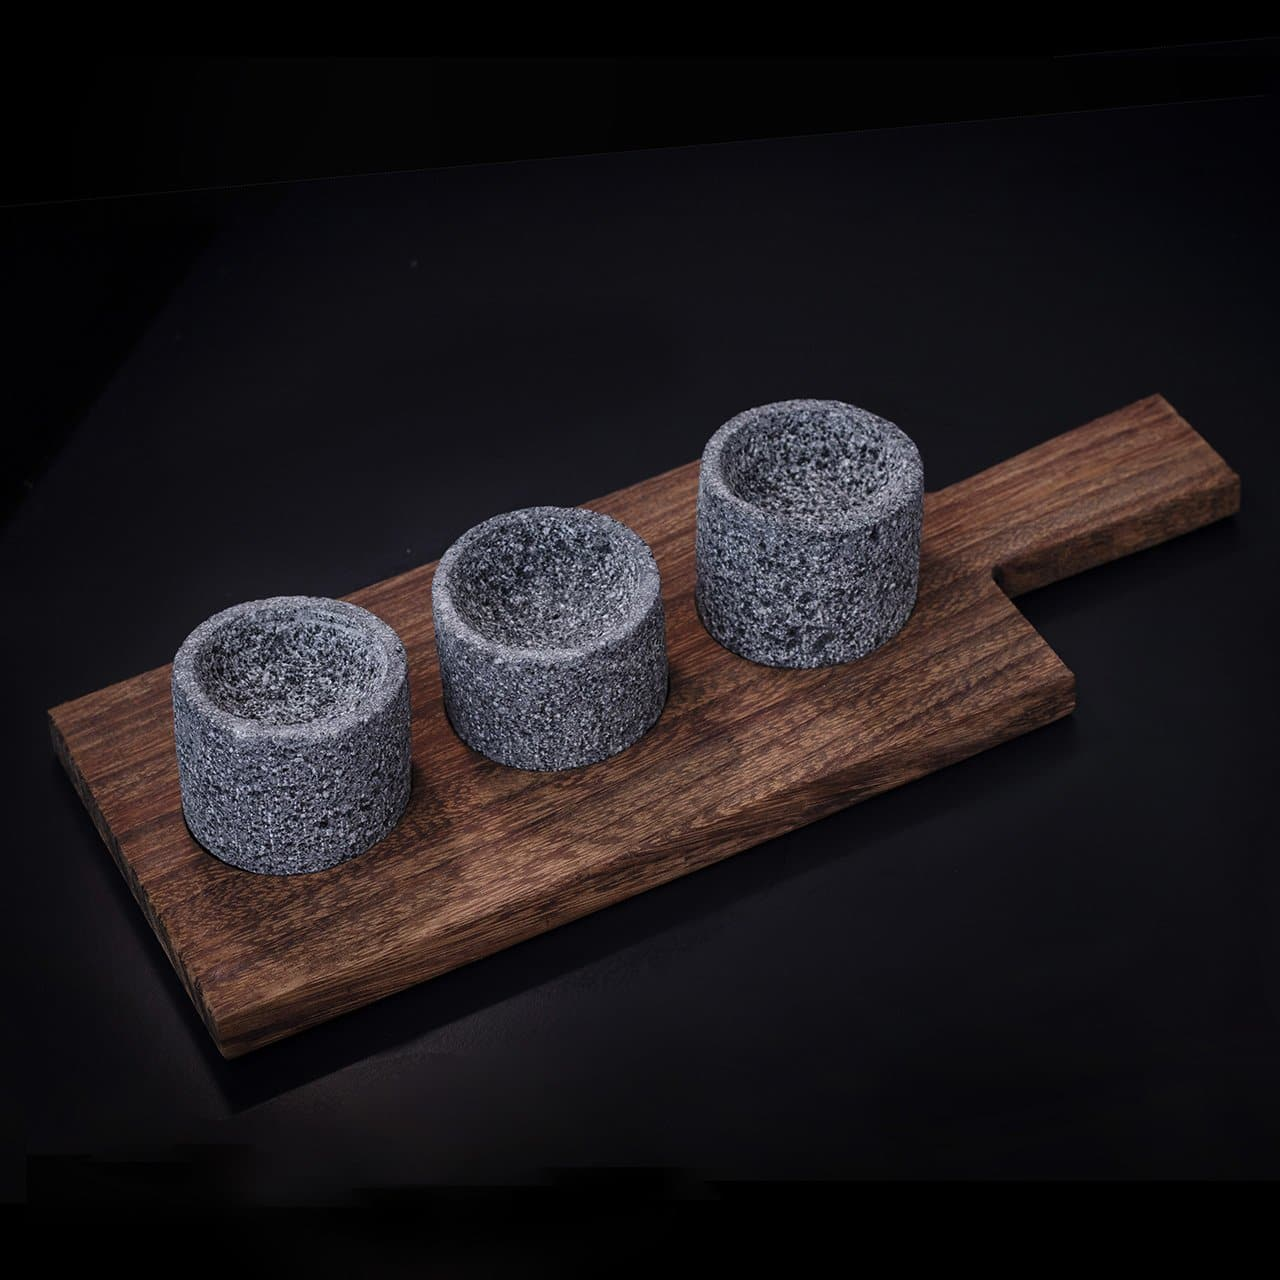 Volcanic Stone 4 Piece Serving Tray - Rectangular